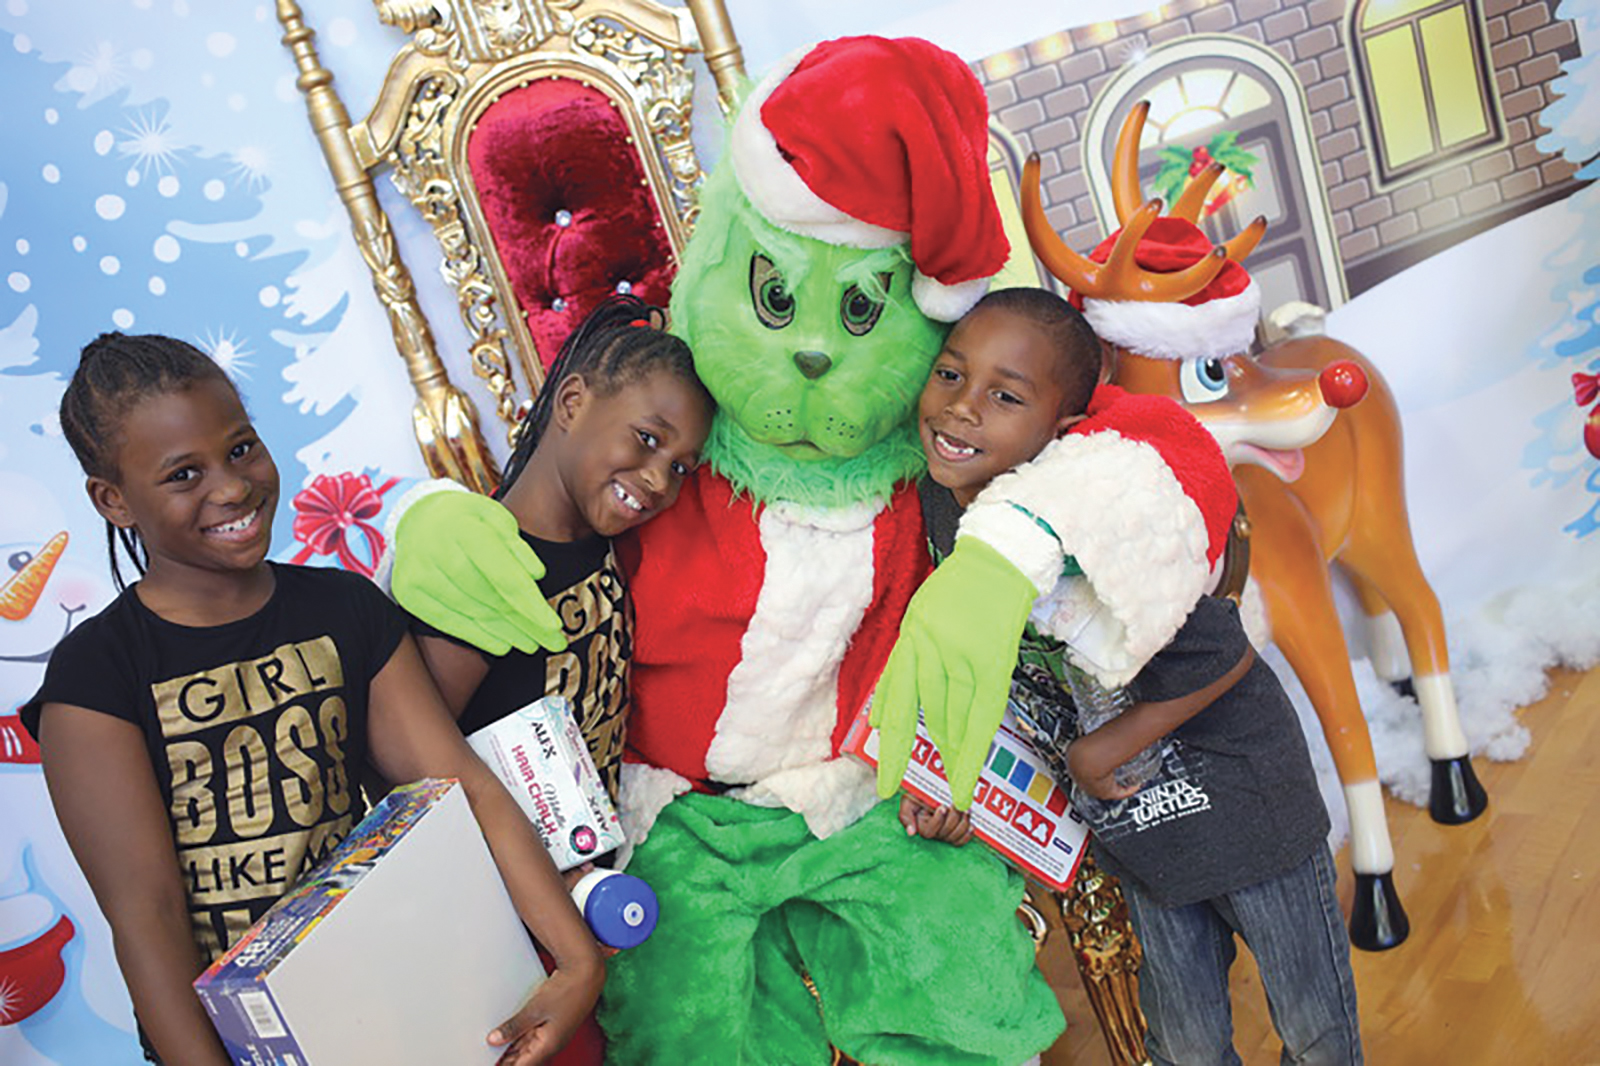 """Best Start Broadway-Manchester and Green Meadows Recreation Hosted """"Winter Wonderland- Resource Fair and Toy Giveaway"""" pic 1.jpg"""